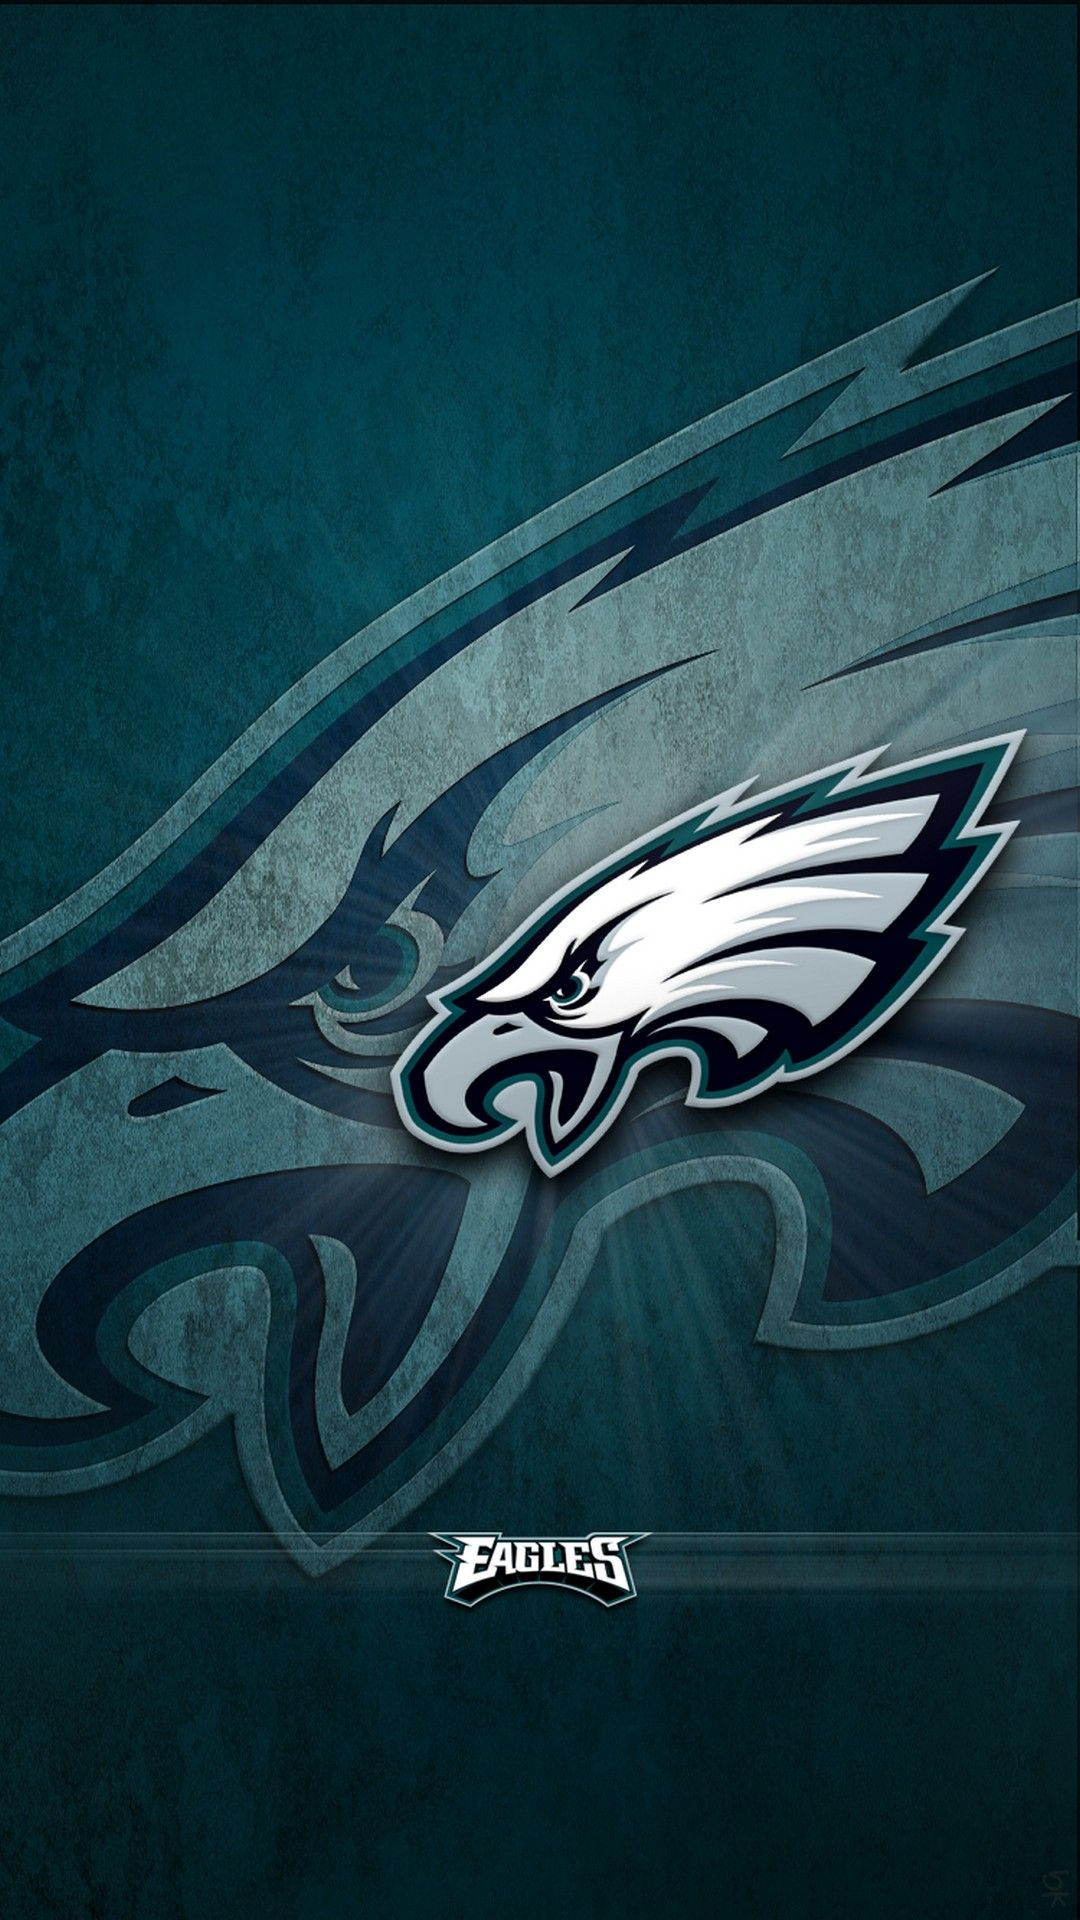 Nfl Wallpapers Philadelphia Eagles Wallpaper Nfl Philadelphia Eagles Philadelphia Eagles Football